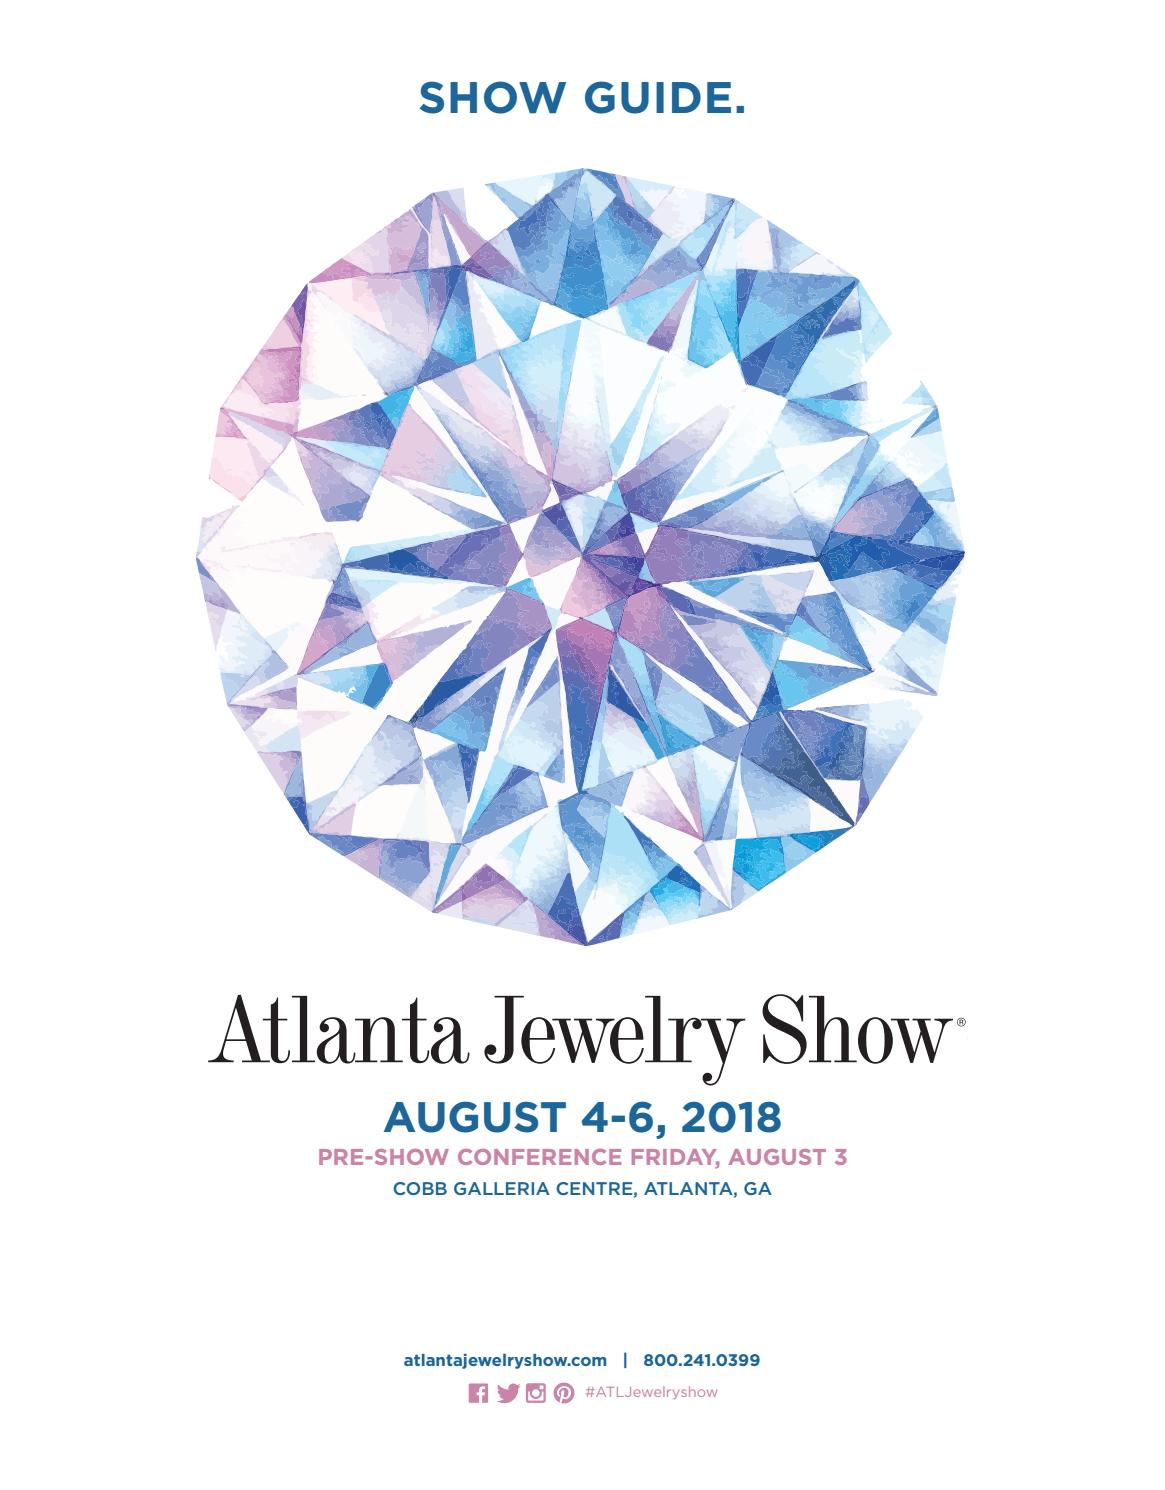 Atlanta Jewelry Show, August 2018 by studio mousetrap - issuu